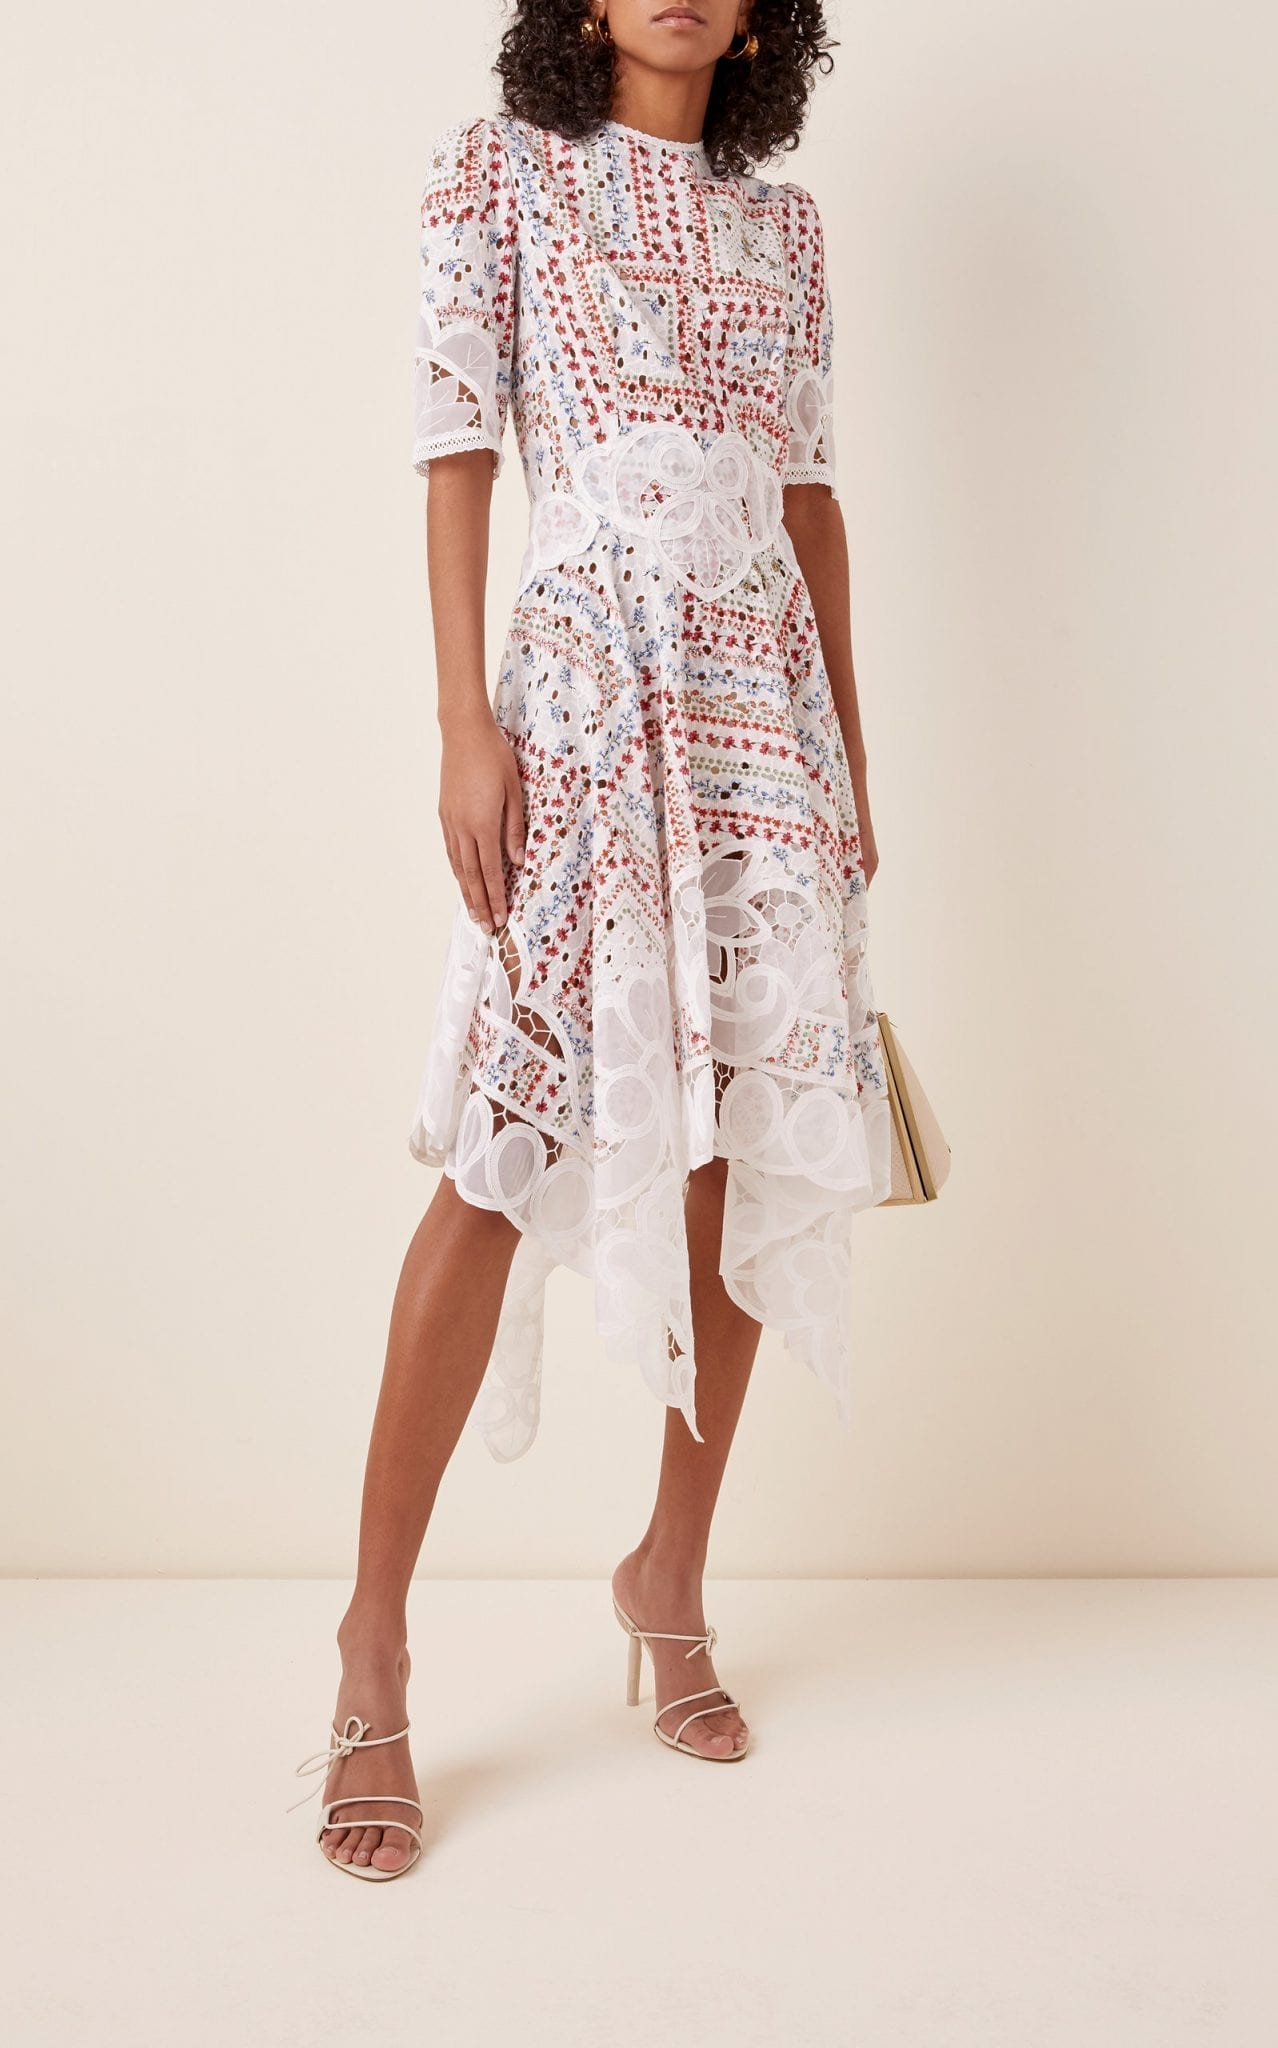 COSTARELLOS Printed Cotton Handkerchief Dress